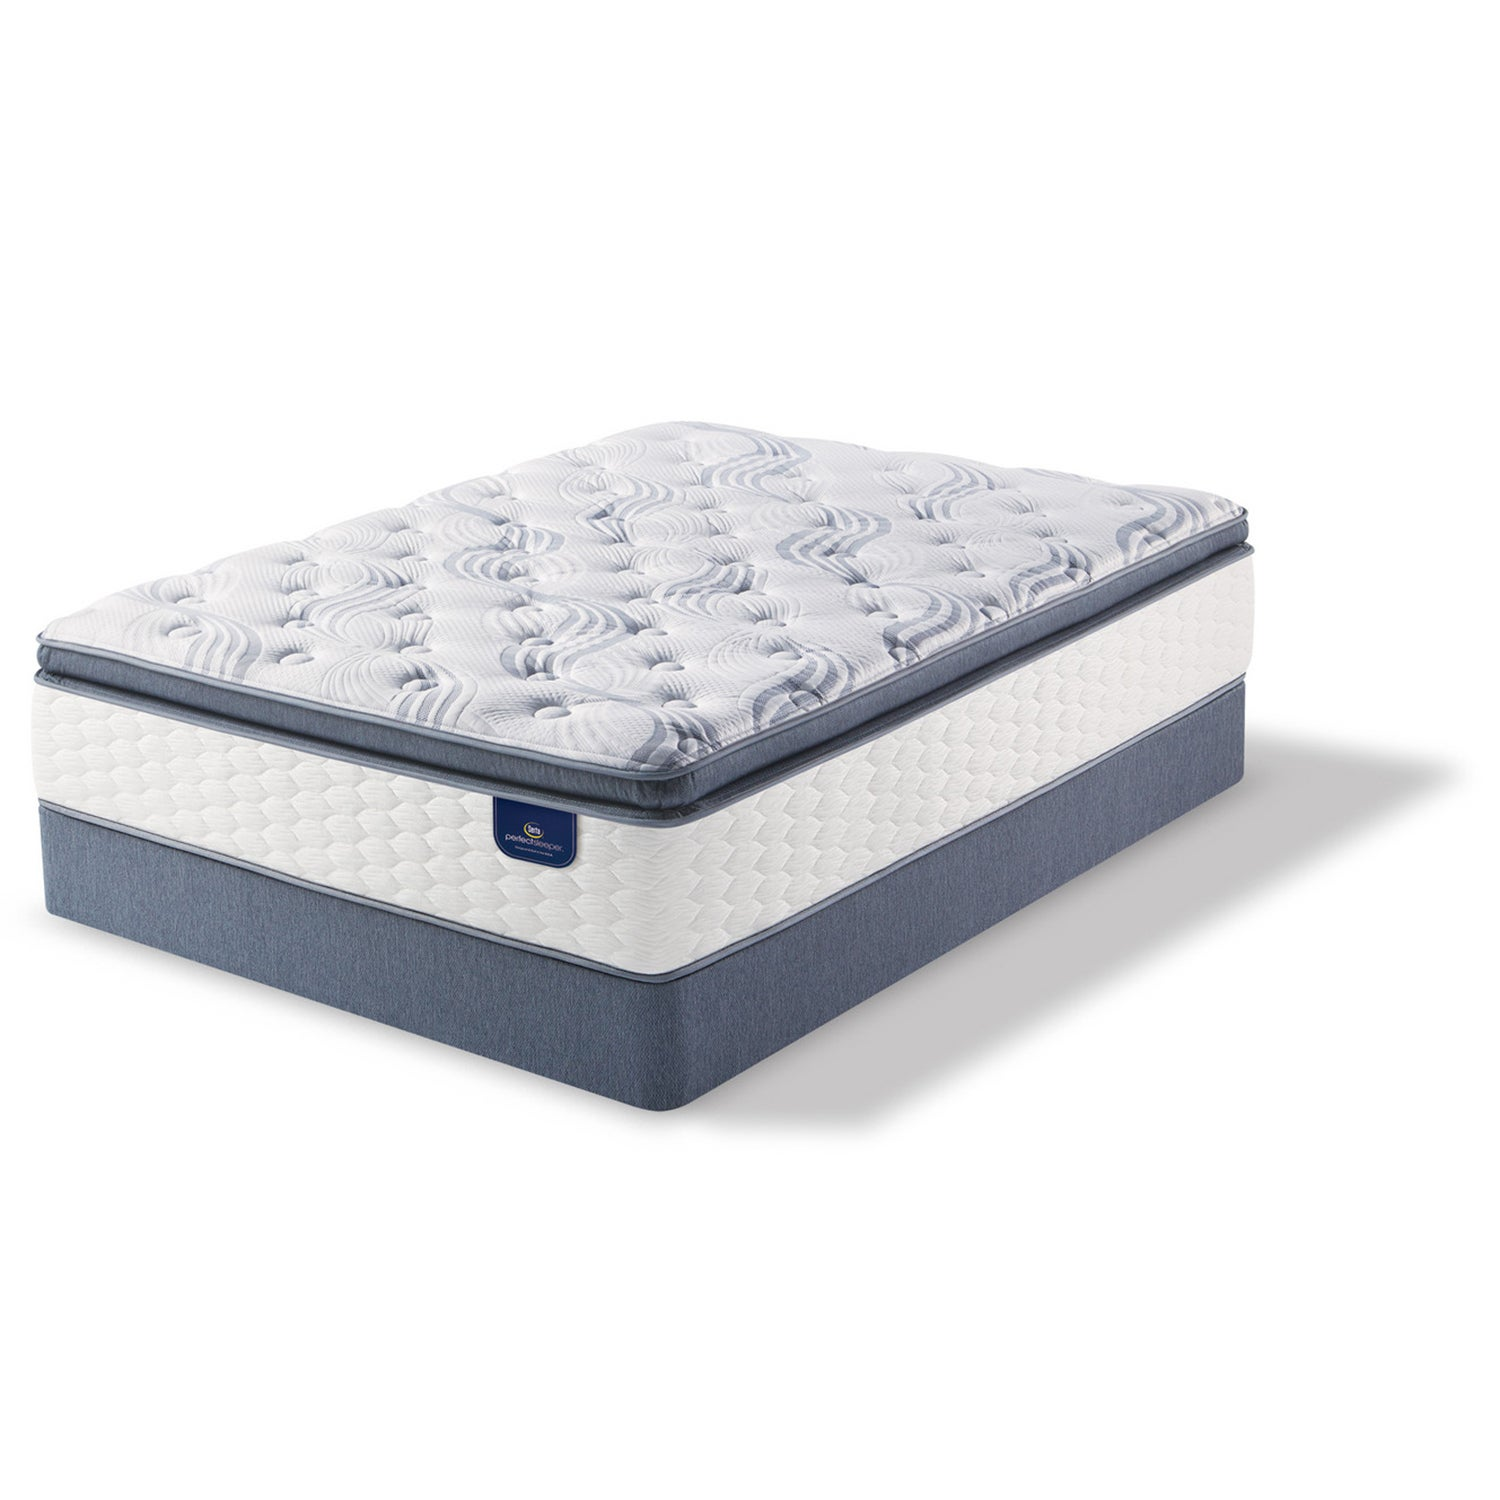 topper top pdx premium response wayfair reviews mattresses sealy mattress plush pillow